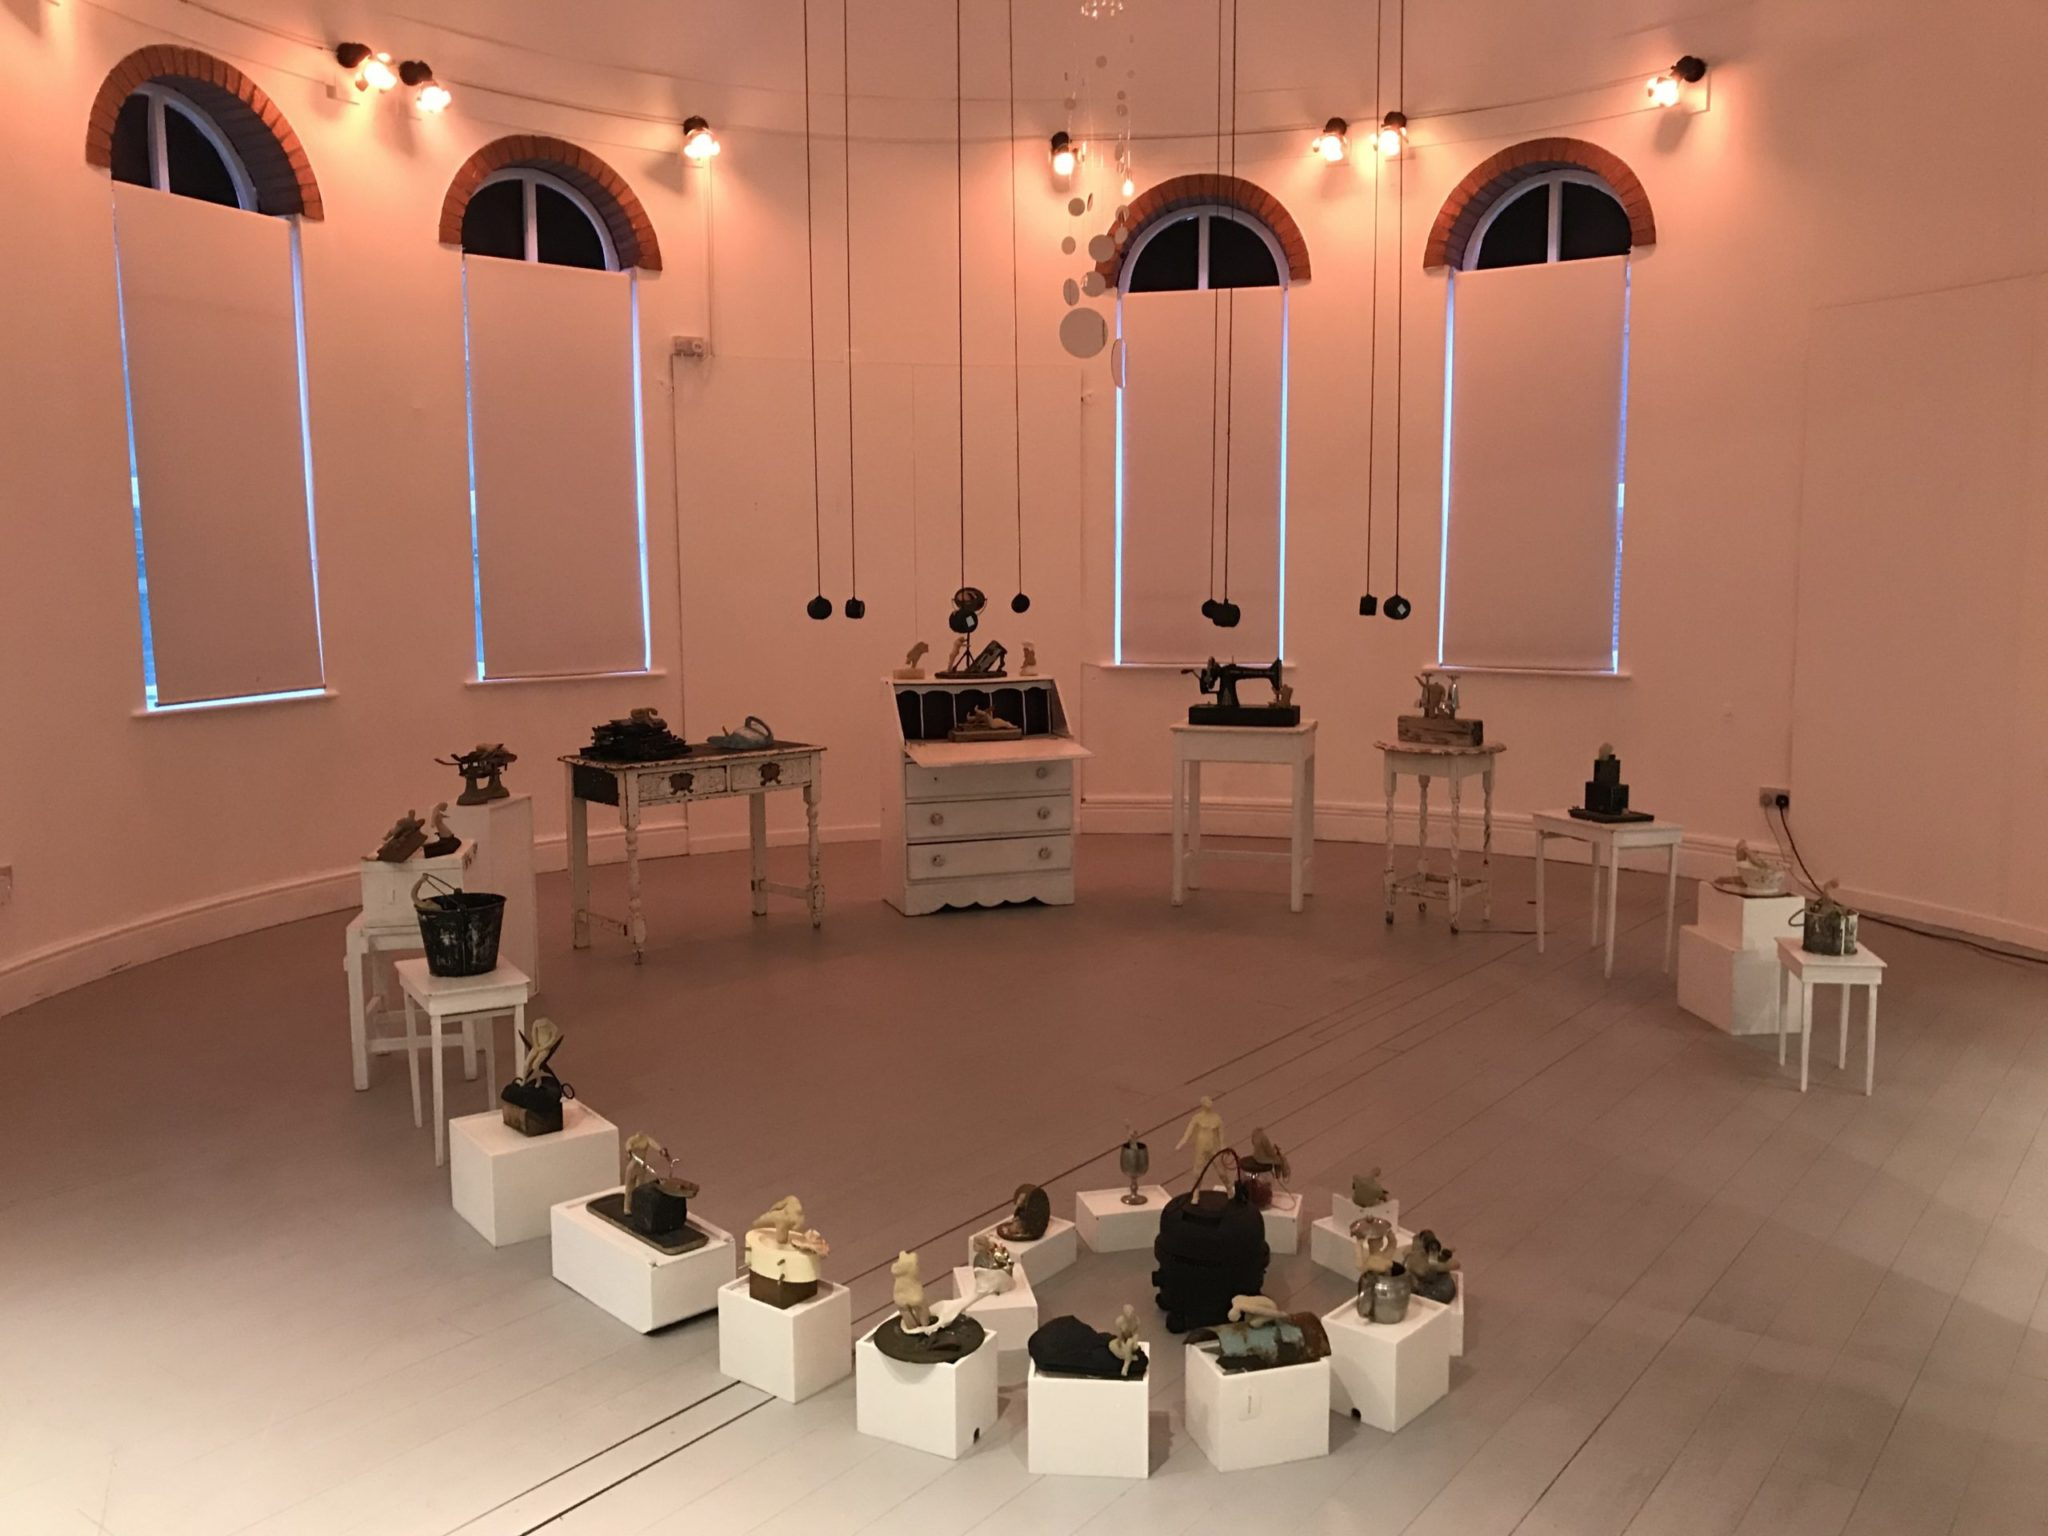 small sculptures on white domestic furniture plinth in a circular gallery with light and sound